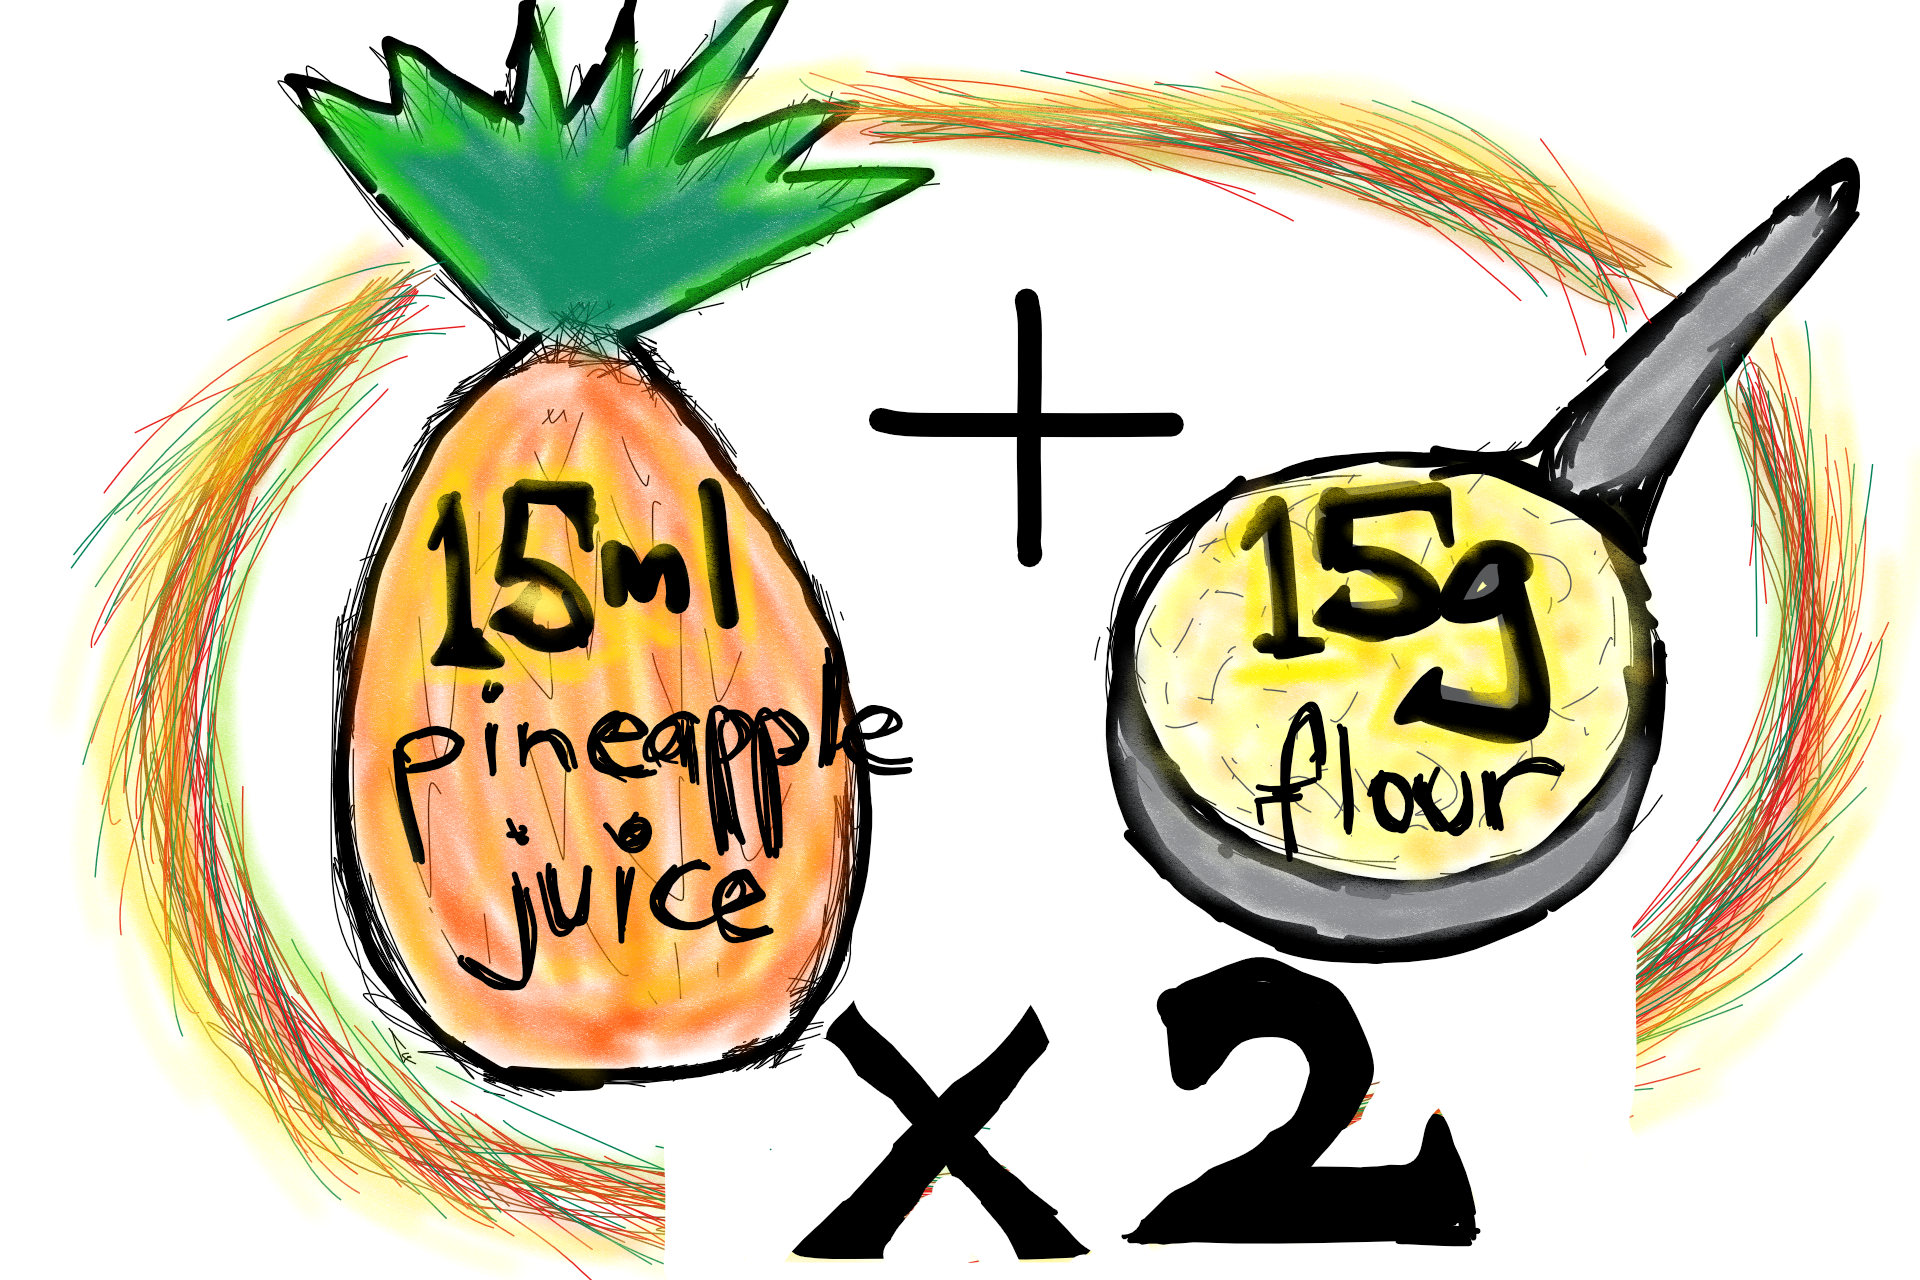 Day 4 - Add two tablespoons of wholegrain flour and two of pineapple juice and stir them into the mixture.